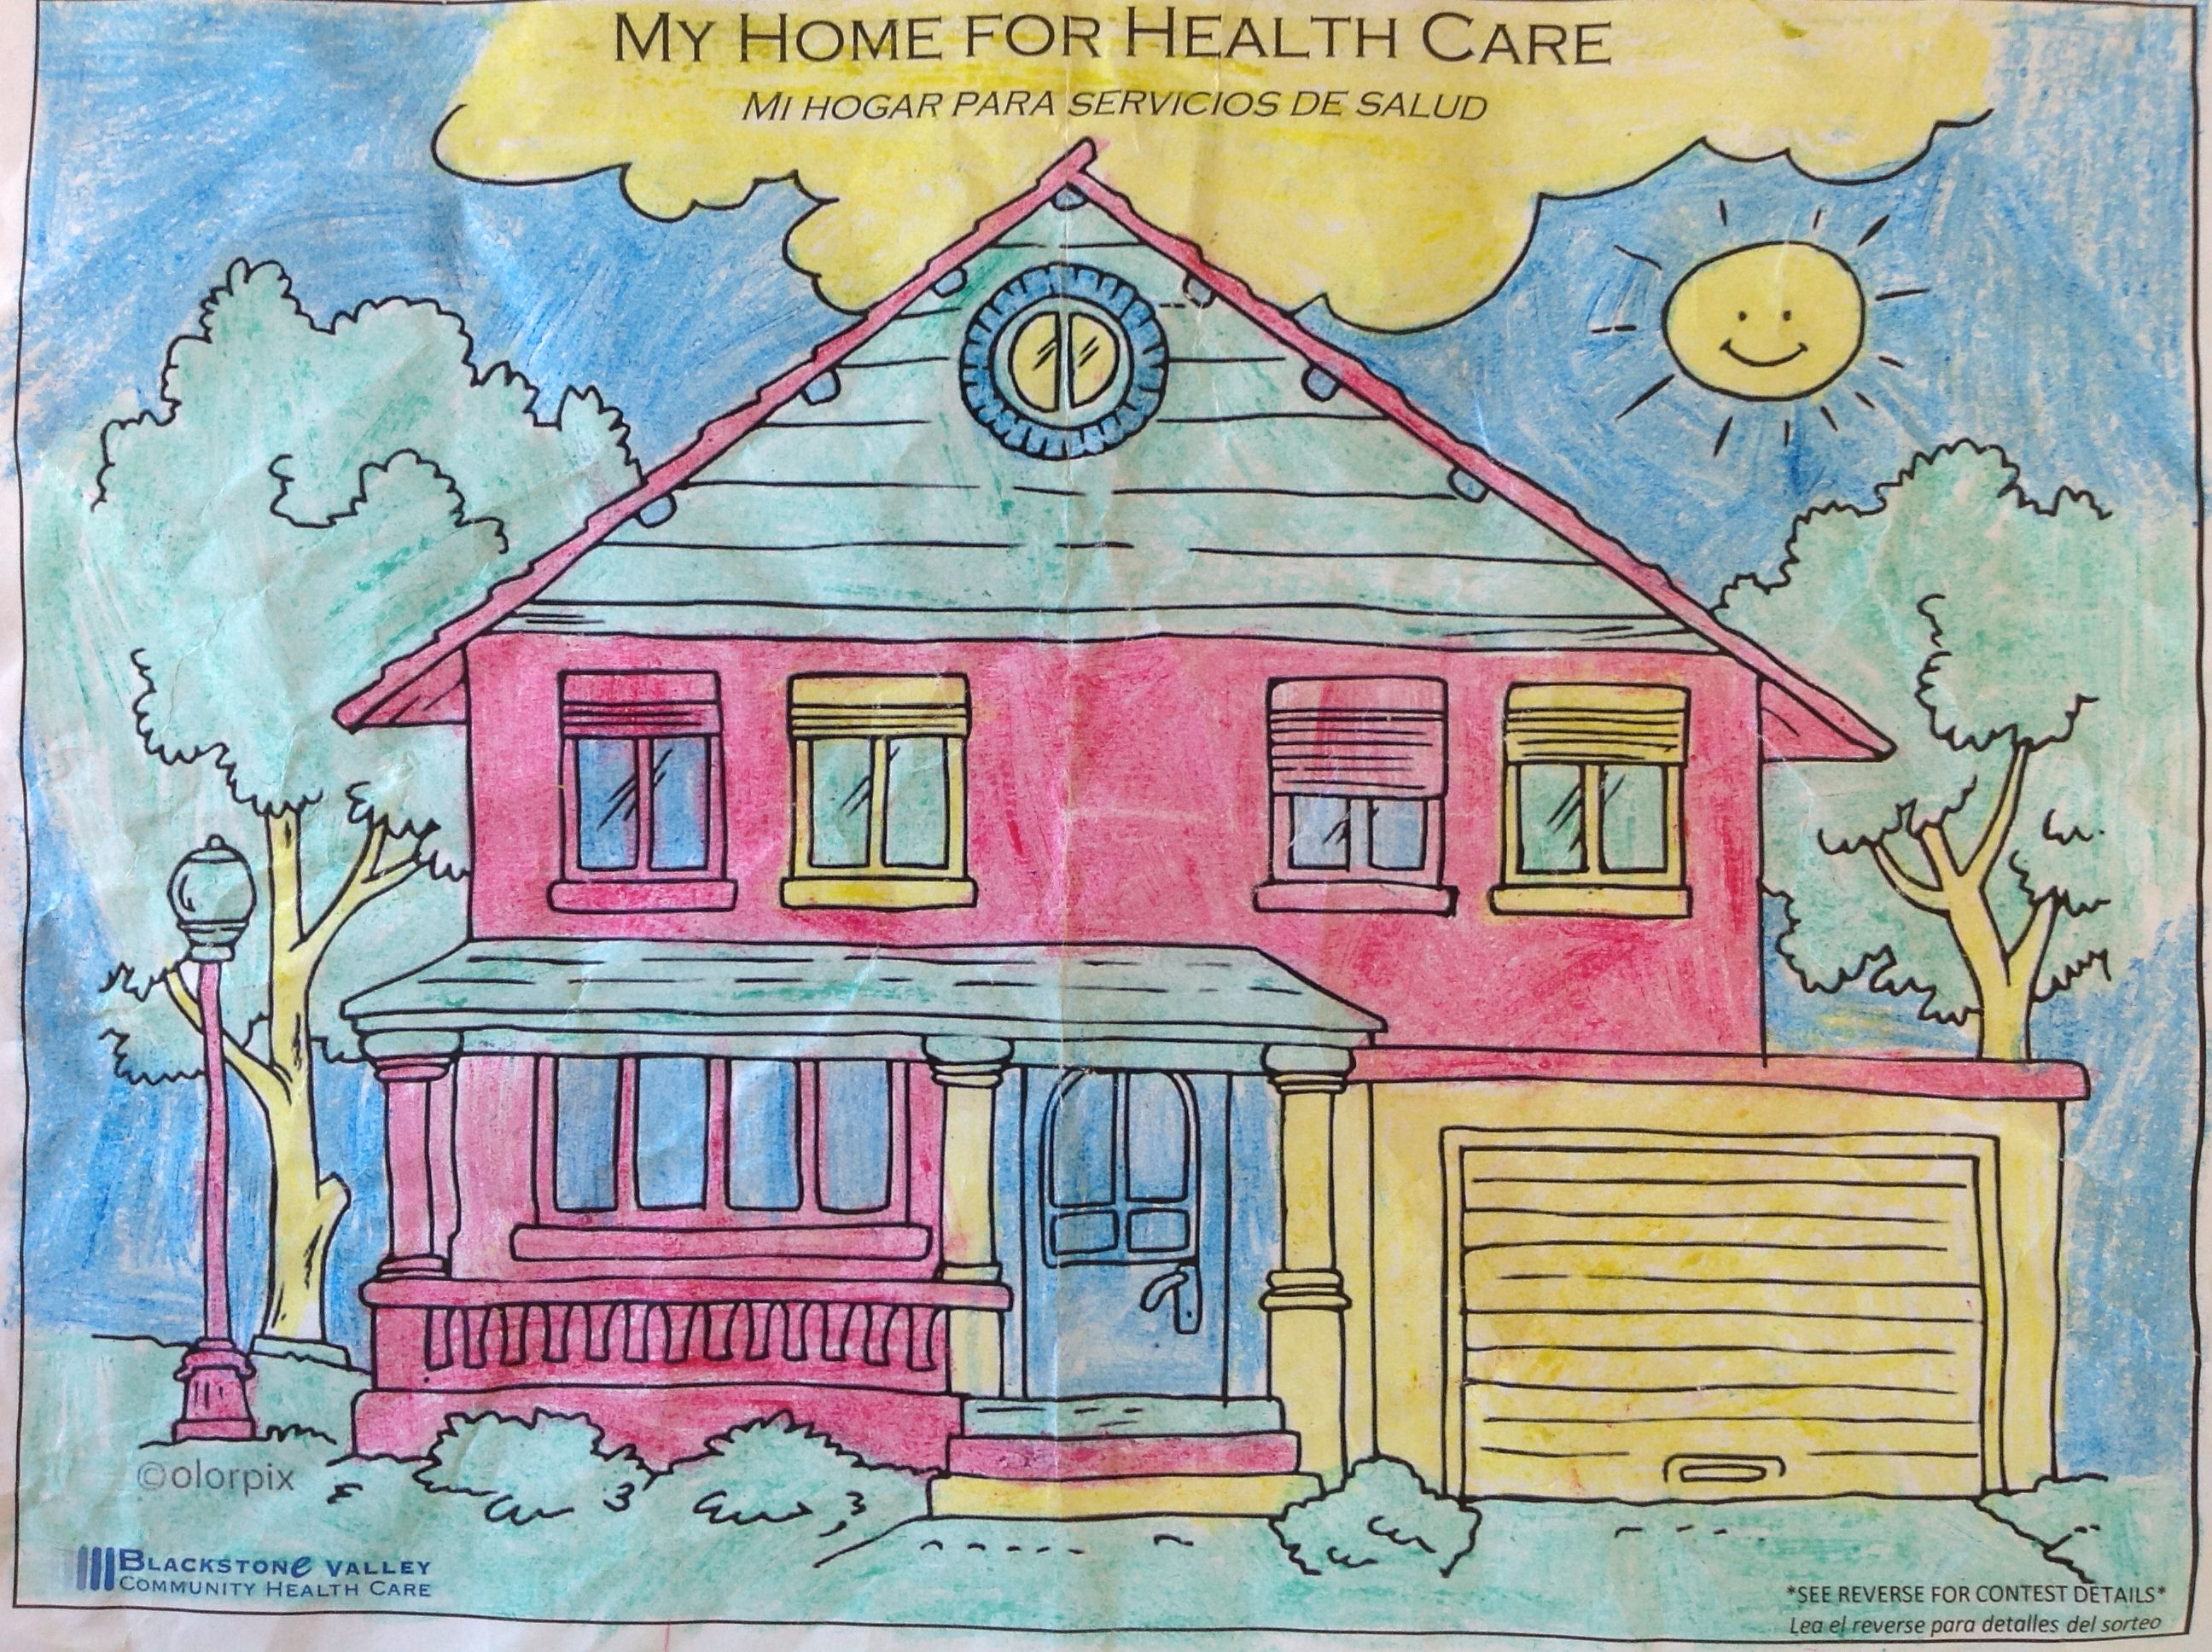 By emerson age 8 coloring contest childrens painting